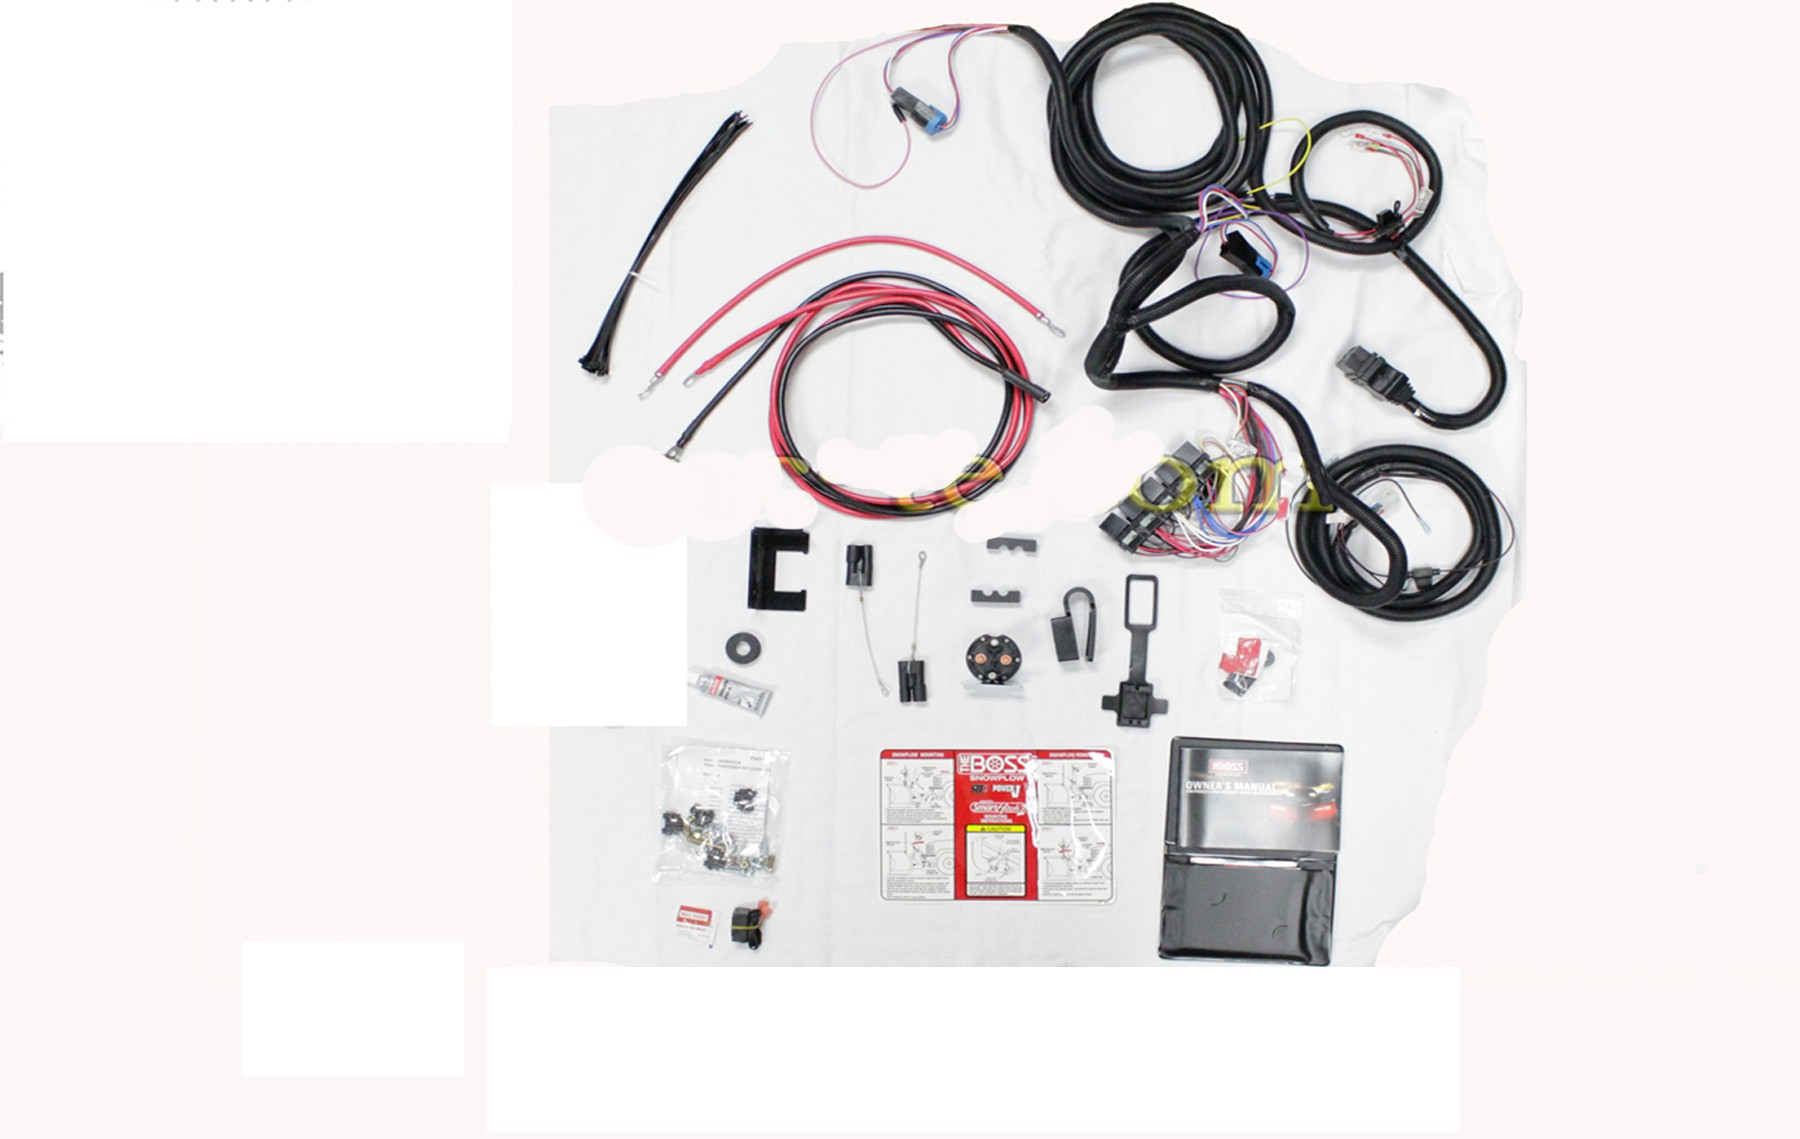 Boss Snow Plow Wiring Harness Parts on boss v-plow solenoid diagram, boss v-plow troubleshooting, honda wiring harness, boss v-plow wiring, toro wiring harness, bobcat wiring harness, kawasaki wiring harness, boss v-plow manual, meyer plow harness, ariens wiring harness, club car wiring harness, boss plow solenoid wiring, kohler wiring harness, exmark wiring harness, sno way wiring harness, scag wiring harness, dixie chopper wiring harness, curtis plow harness, boss wiring-diagram, simplicity wiring harness,